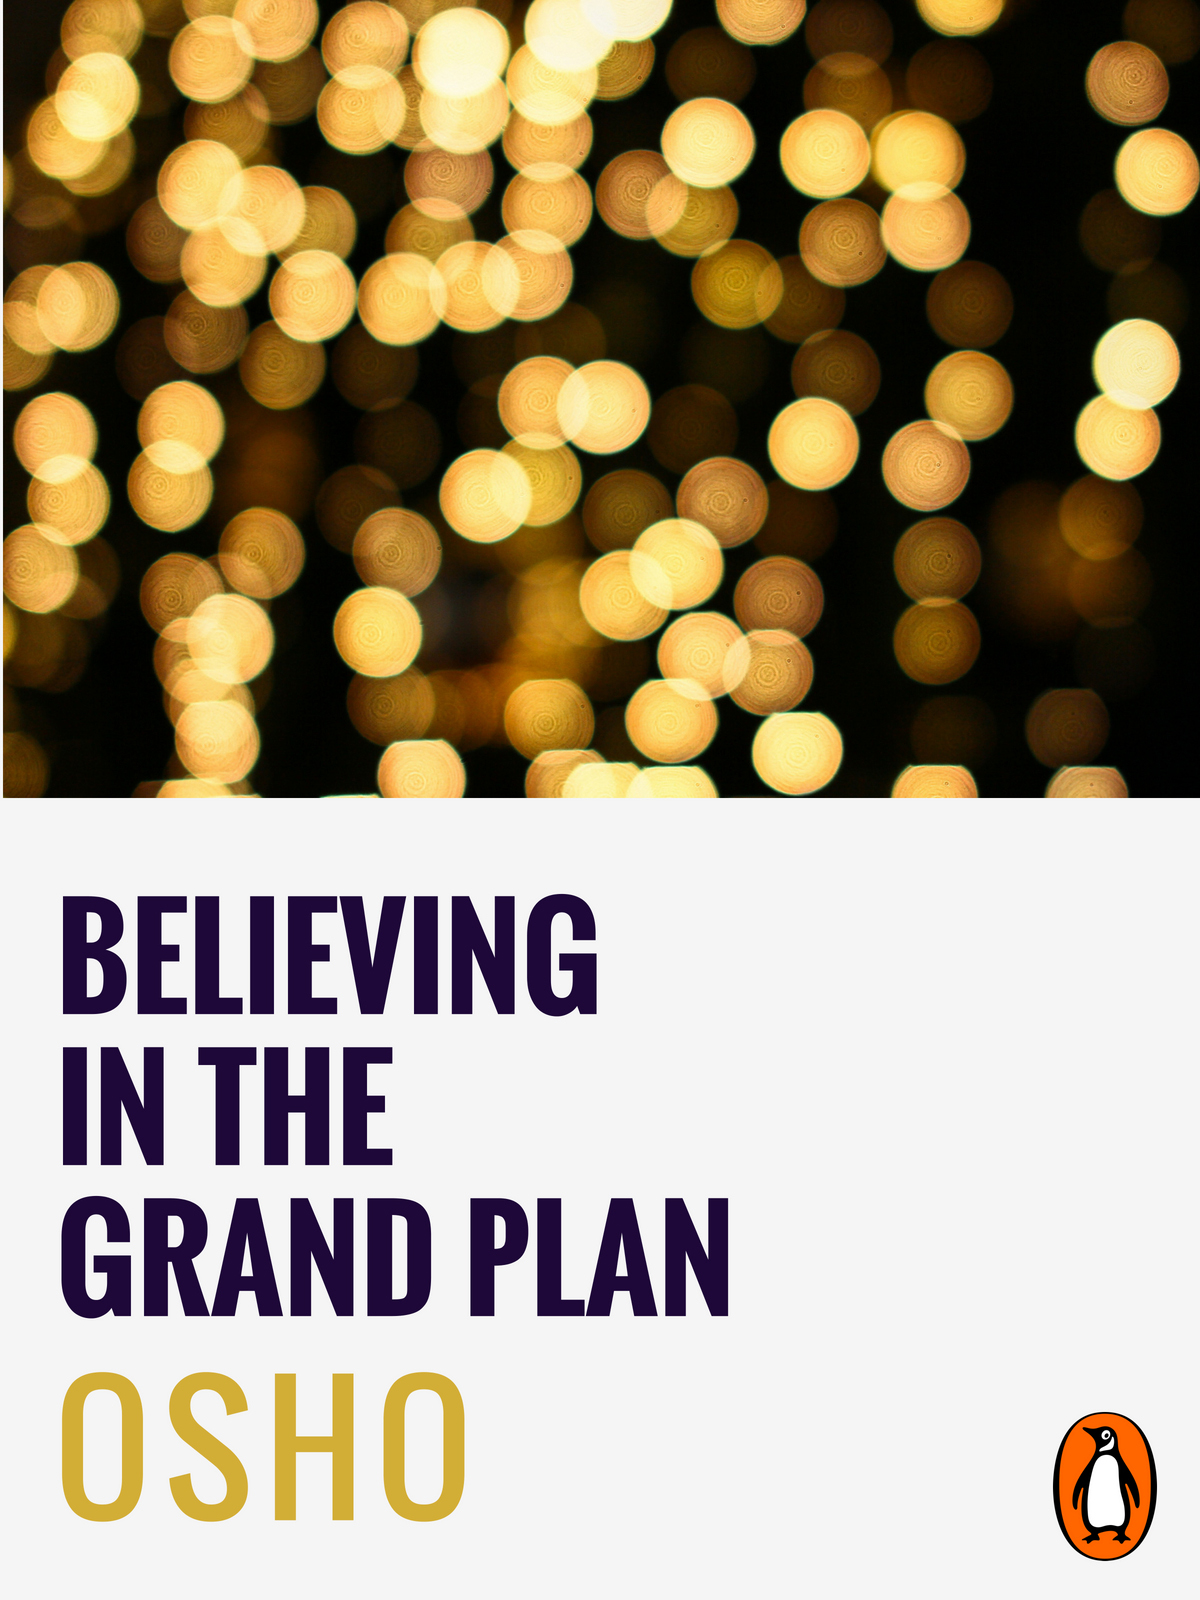 Believing in the Grand Plan